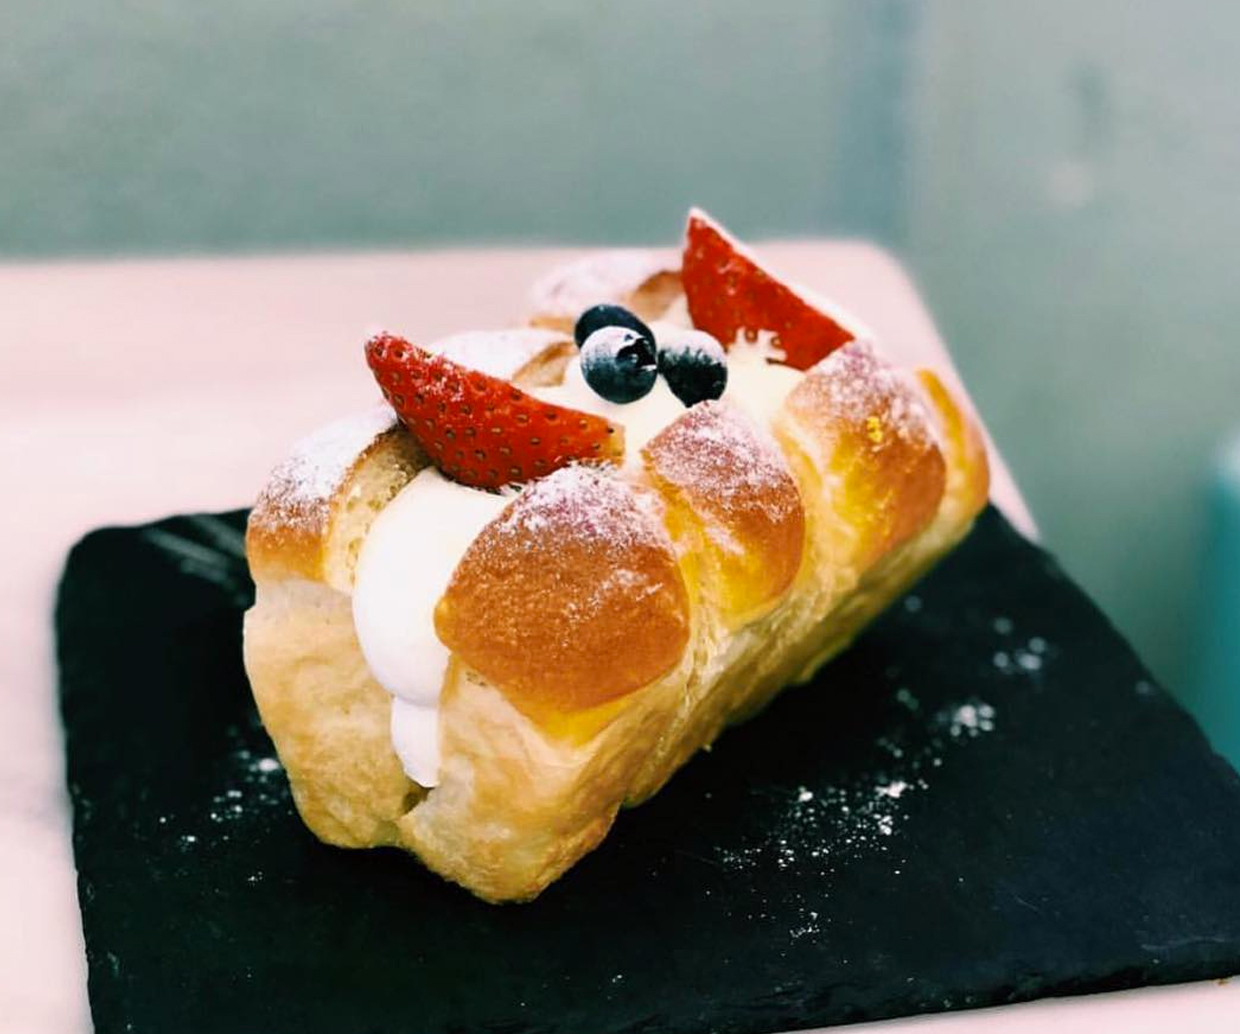 cream bread with fruit on top